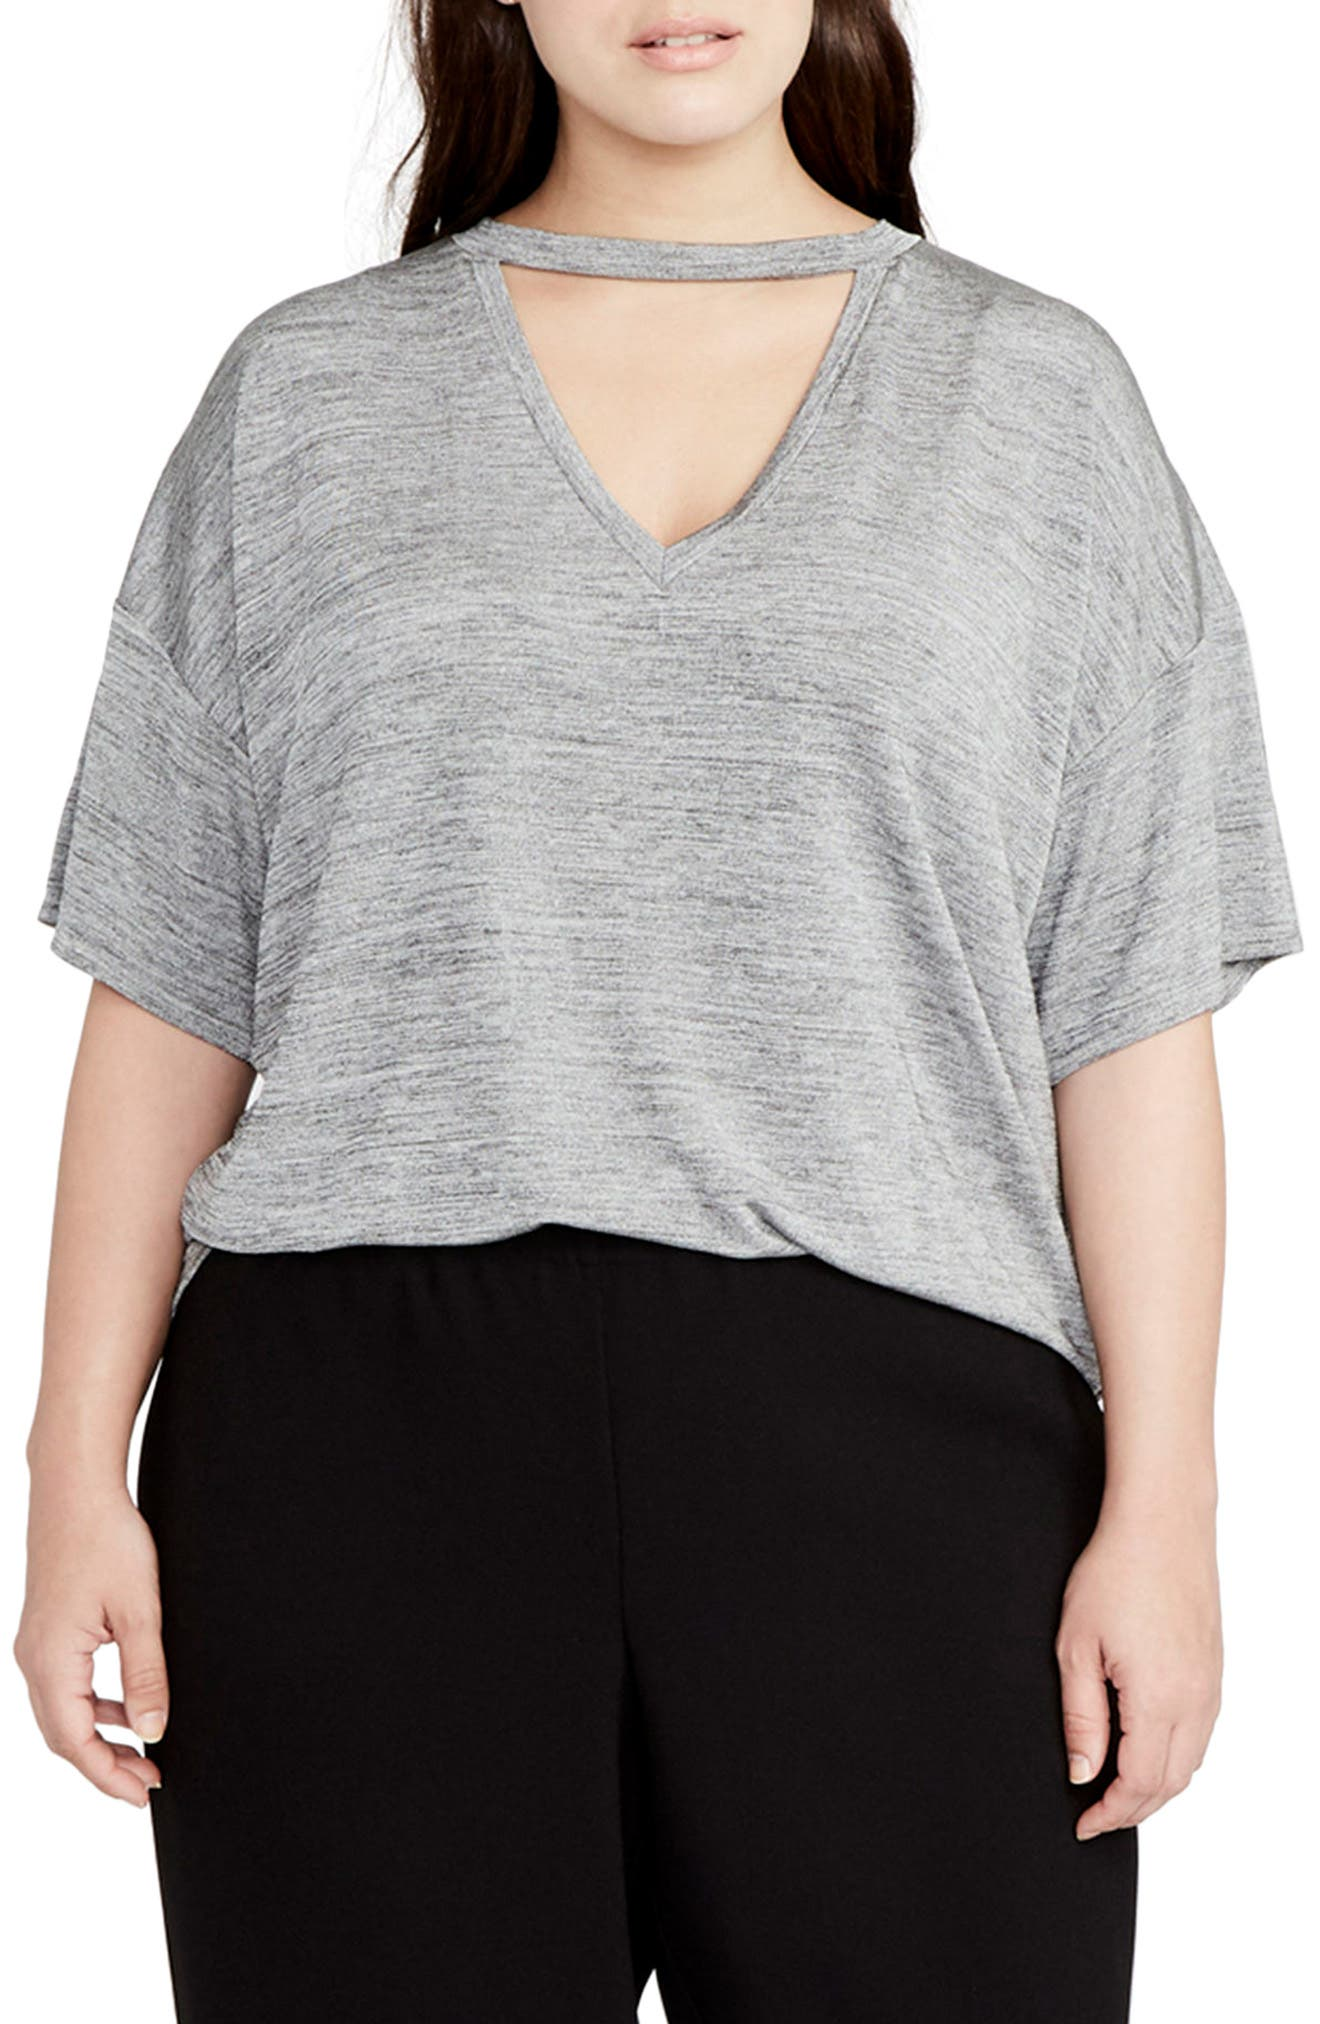 Deep V Boxy Tee,                             Main thumbnail 1, color,                             Heather Grey